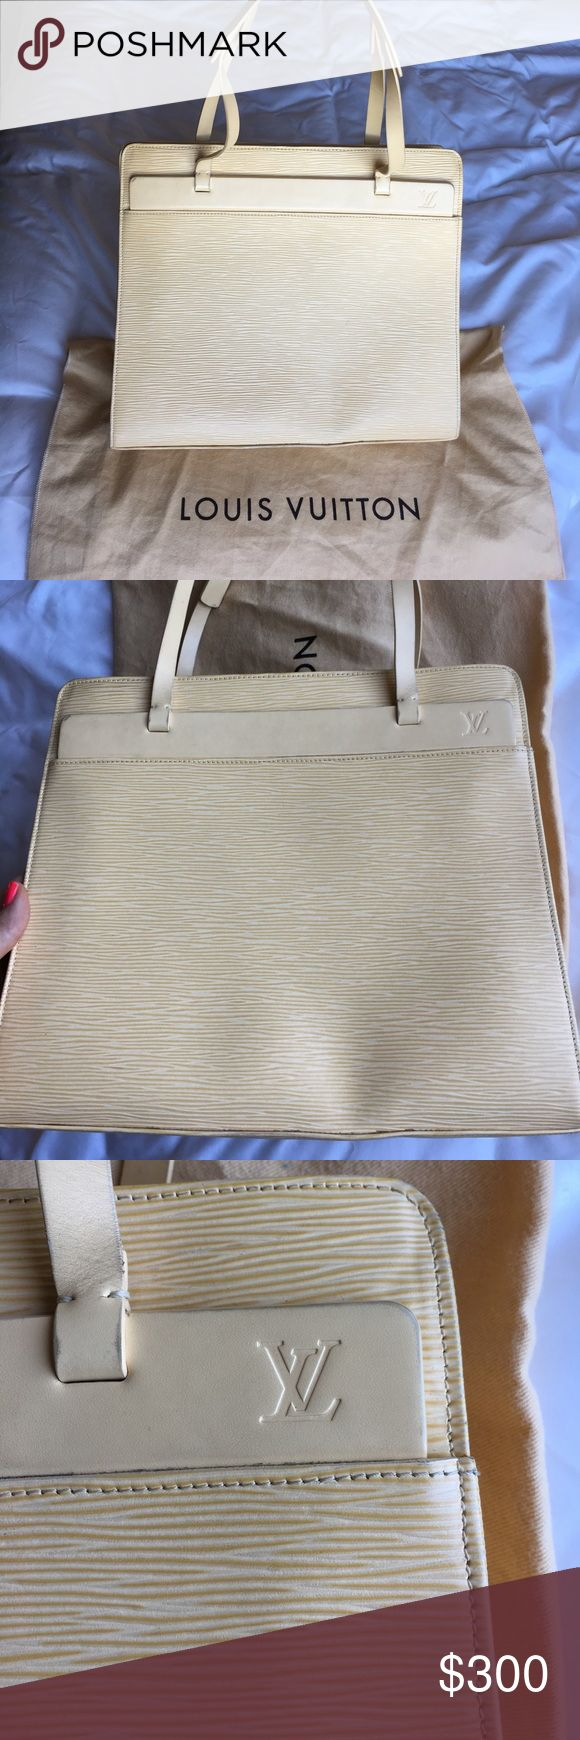 """Louis Vuitton Epi leather Croisette in vanilla Louis Vuitton Epi Leather Croisette in the color vanilla. Beautiful neutral color; perfect for summer and goes with everything! This bag has been used and has some general signs of wear, but overall is in good condition. Dimensions 12""""long 10""""high 4""""wide. Drop is 7"""". I can include the dust bag if buyer requests. Date code pictured LB1010. If you want to see any more photos please just ask. Louis Vuitton Bags Shoulder Bags"""